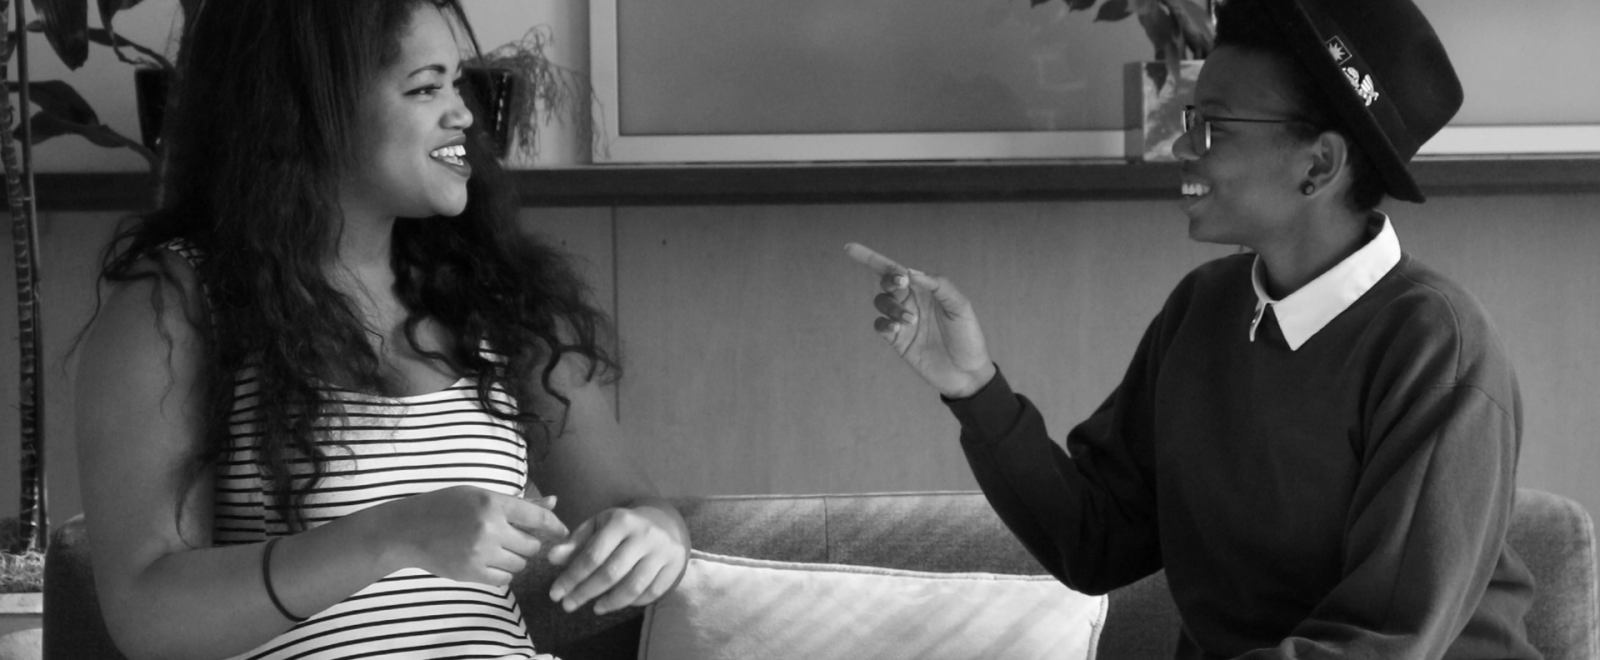 A black and white image of two young Black people sitting on a couch, facing each other and laughing. On the left, a young Black woman with medium brown skin and long dark curly hair wears a striped dress. On the right, a young Black nonbinary person points to their left, wearing a fedora, dark sweater over white button down, and slacks.